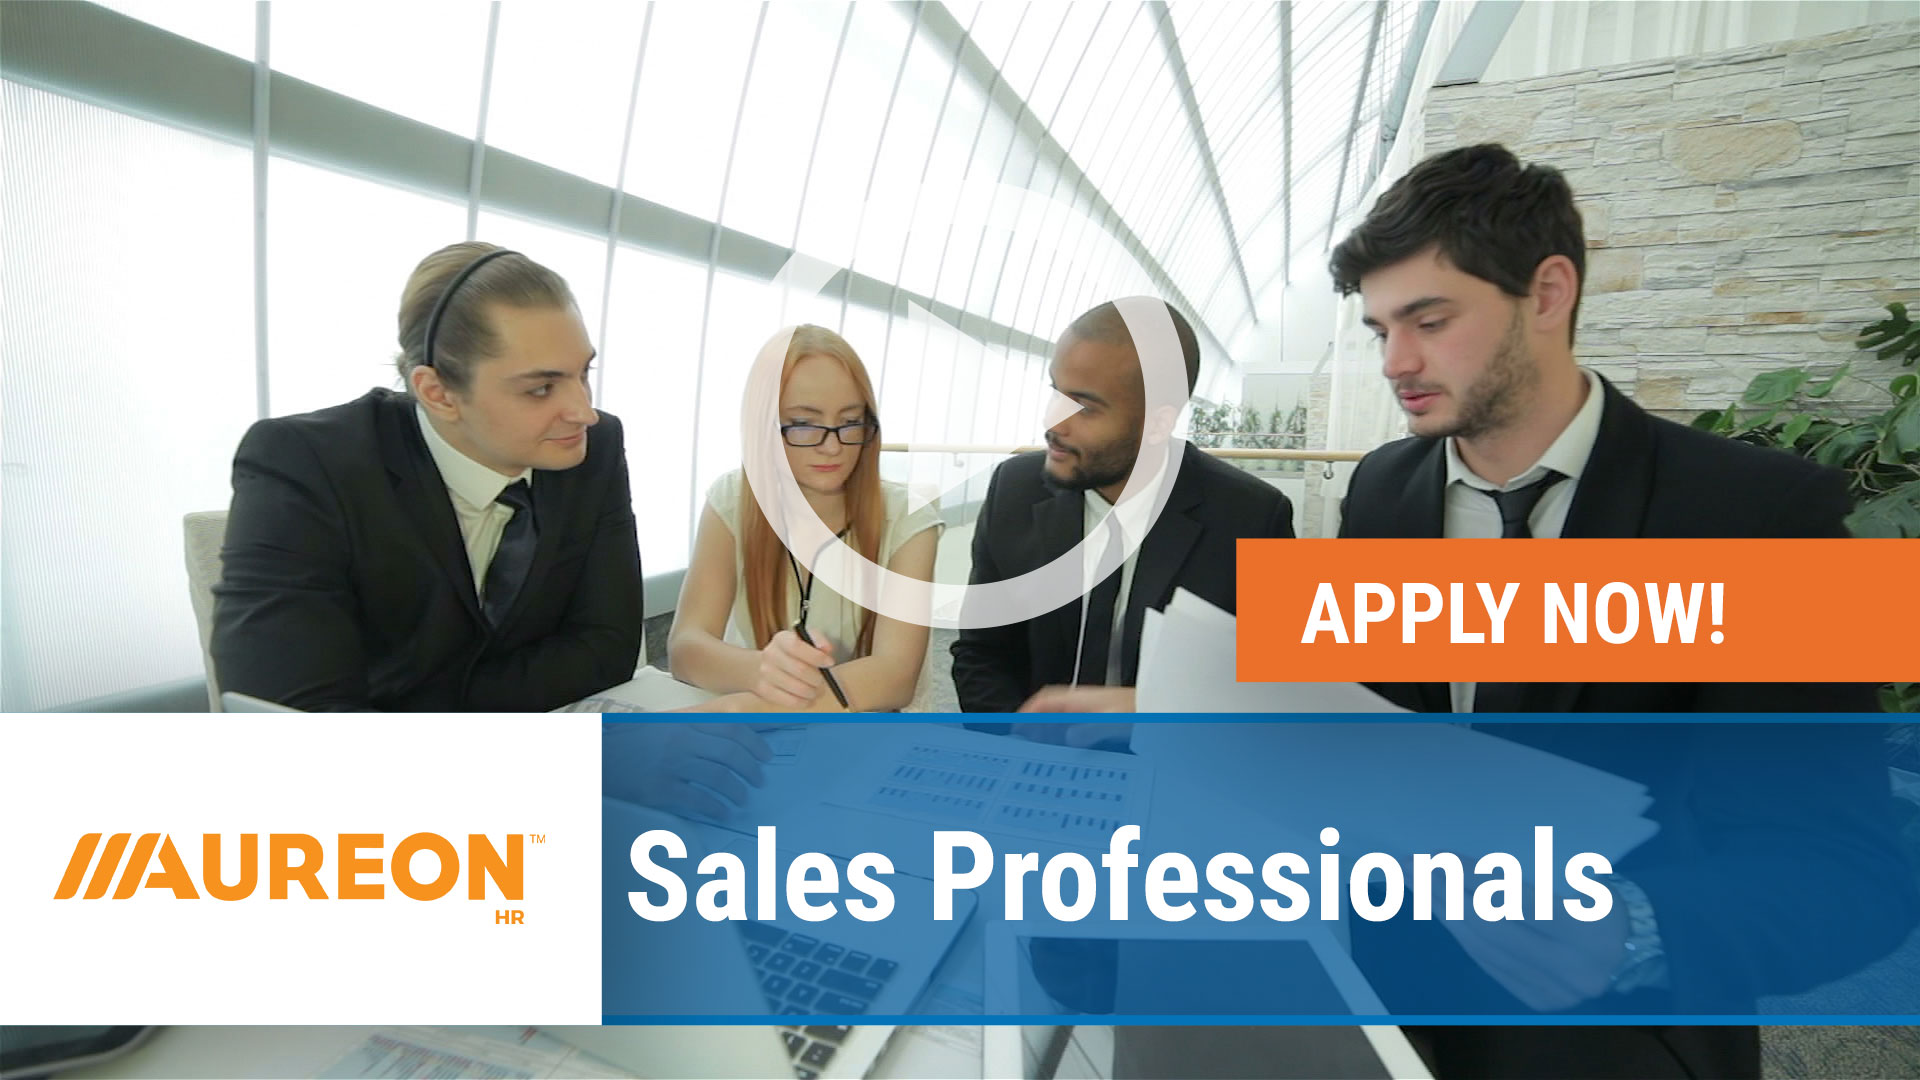 Watch our careers video for available job opening Sales Professionals in Des Moines, IA